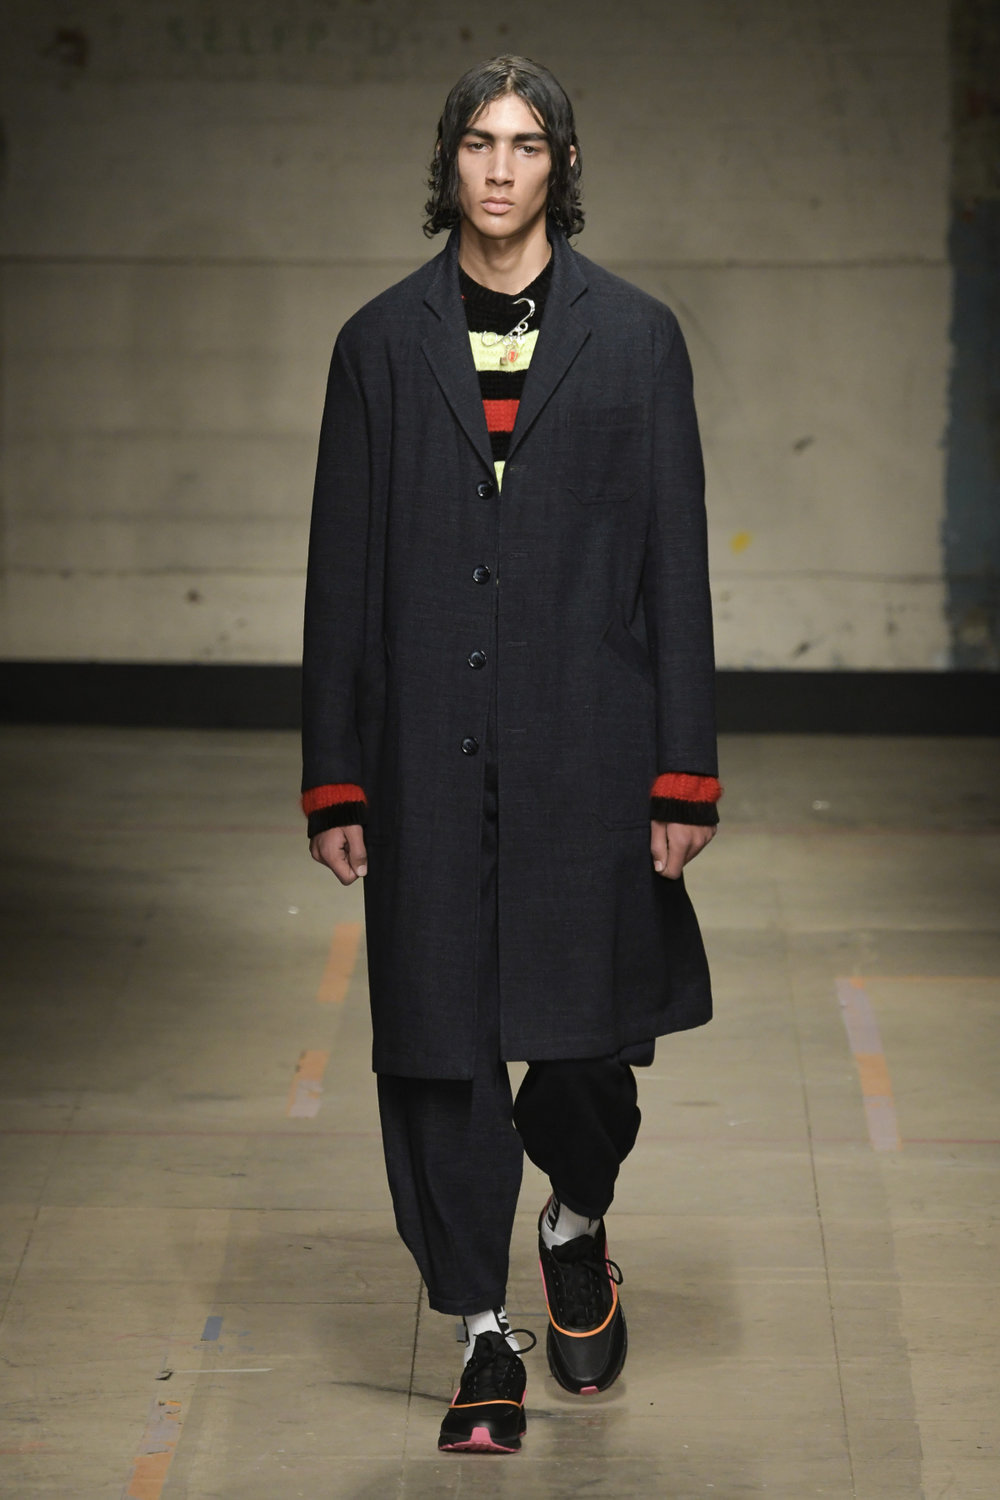 topman_design_look_11_2017_aw_mens.jpeg